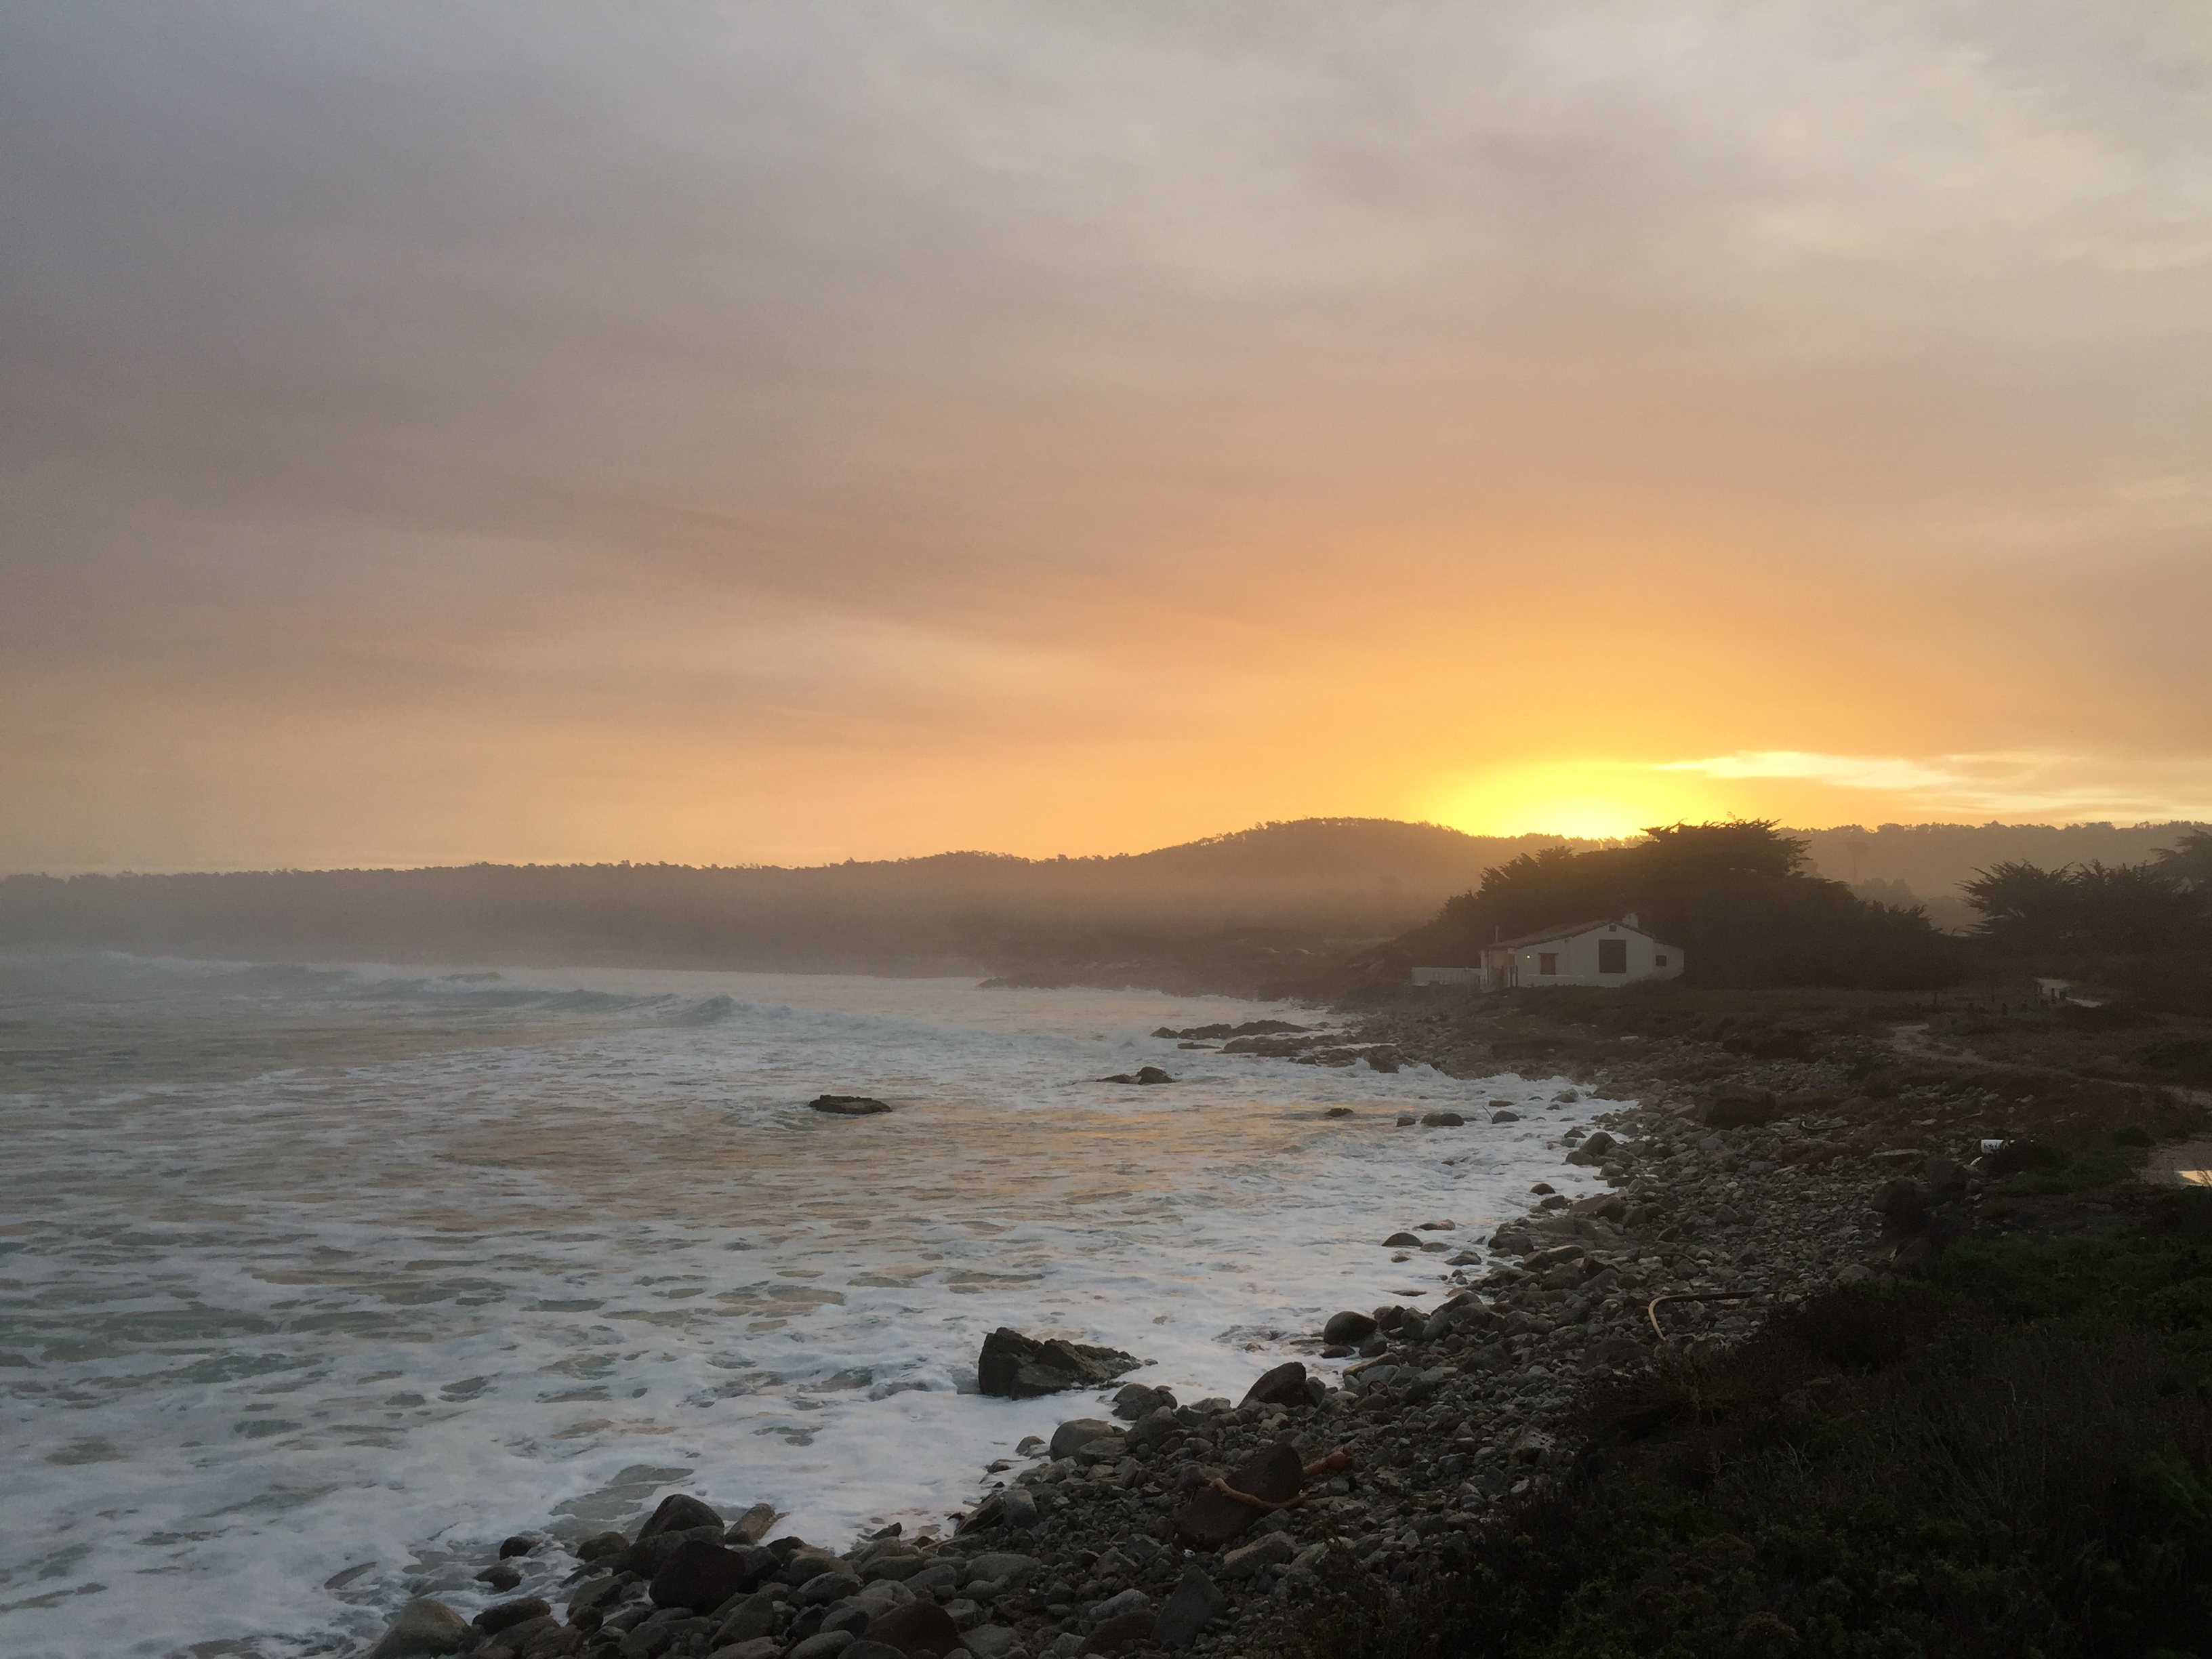 King Tides Documented in January